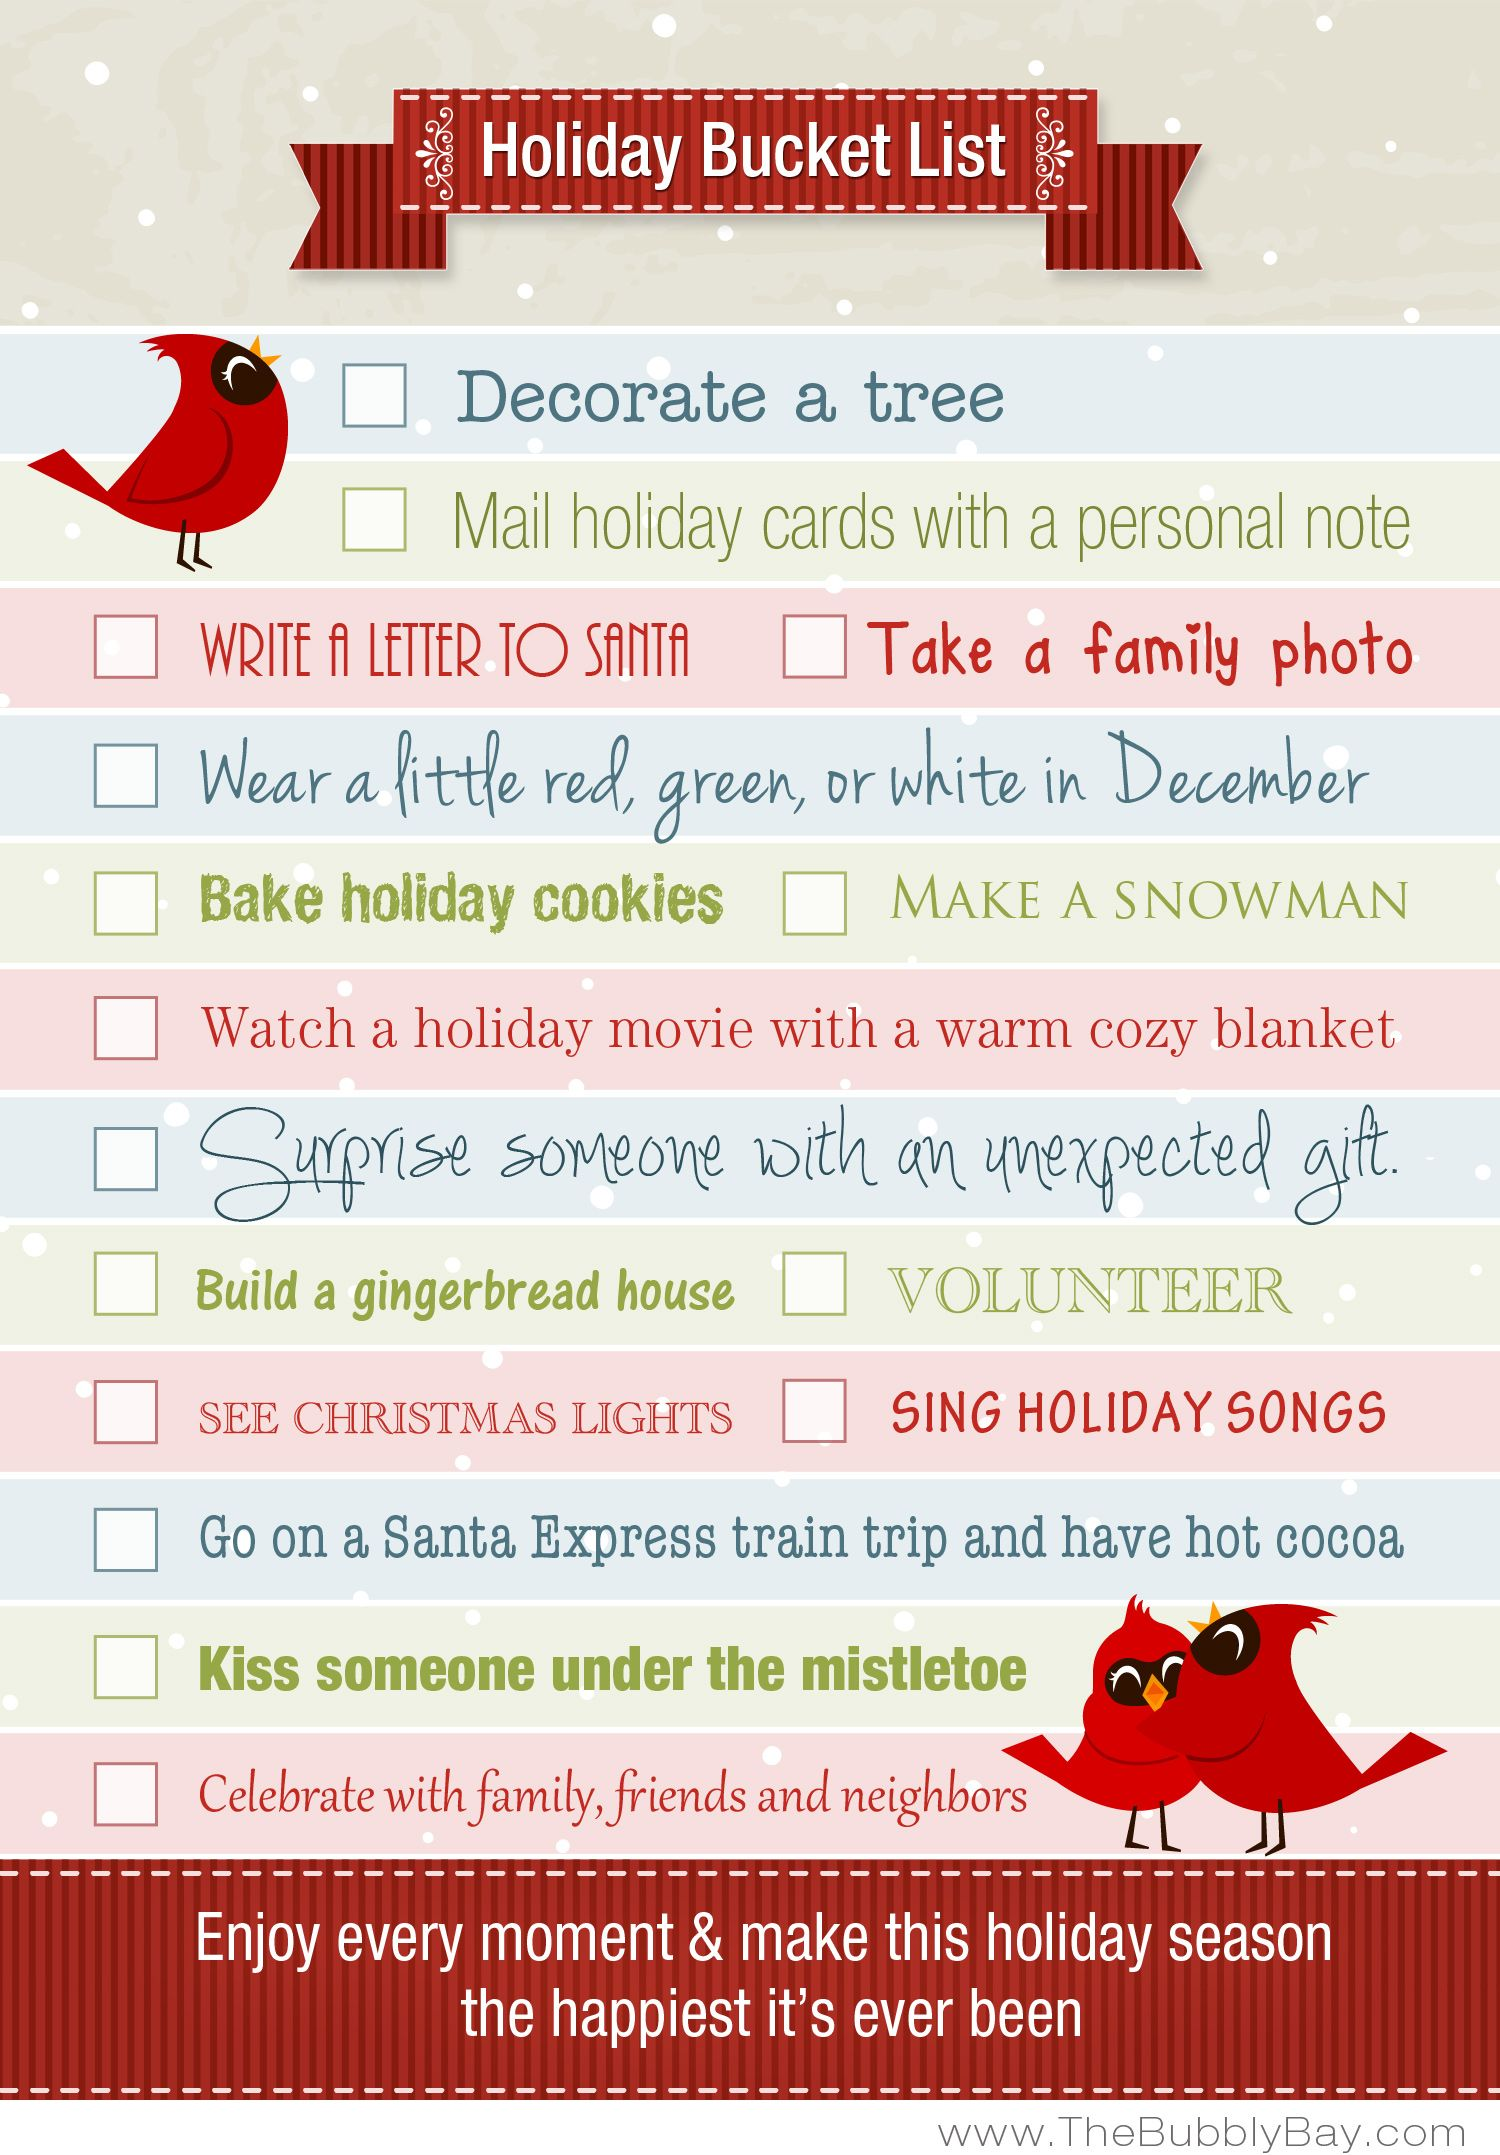 Holiday Bucket List Slow Down Enjoy The Simple Pleasures And